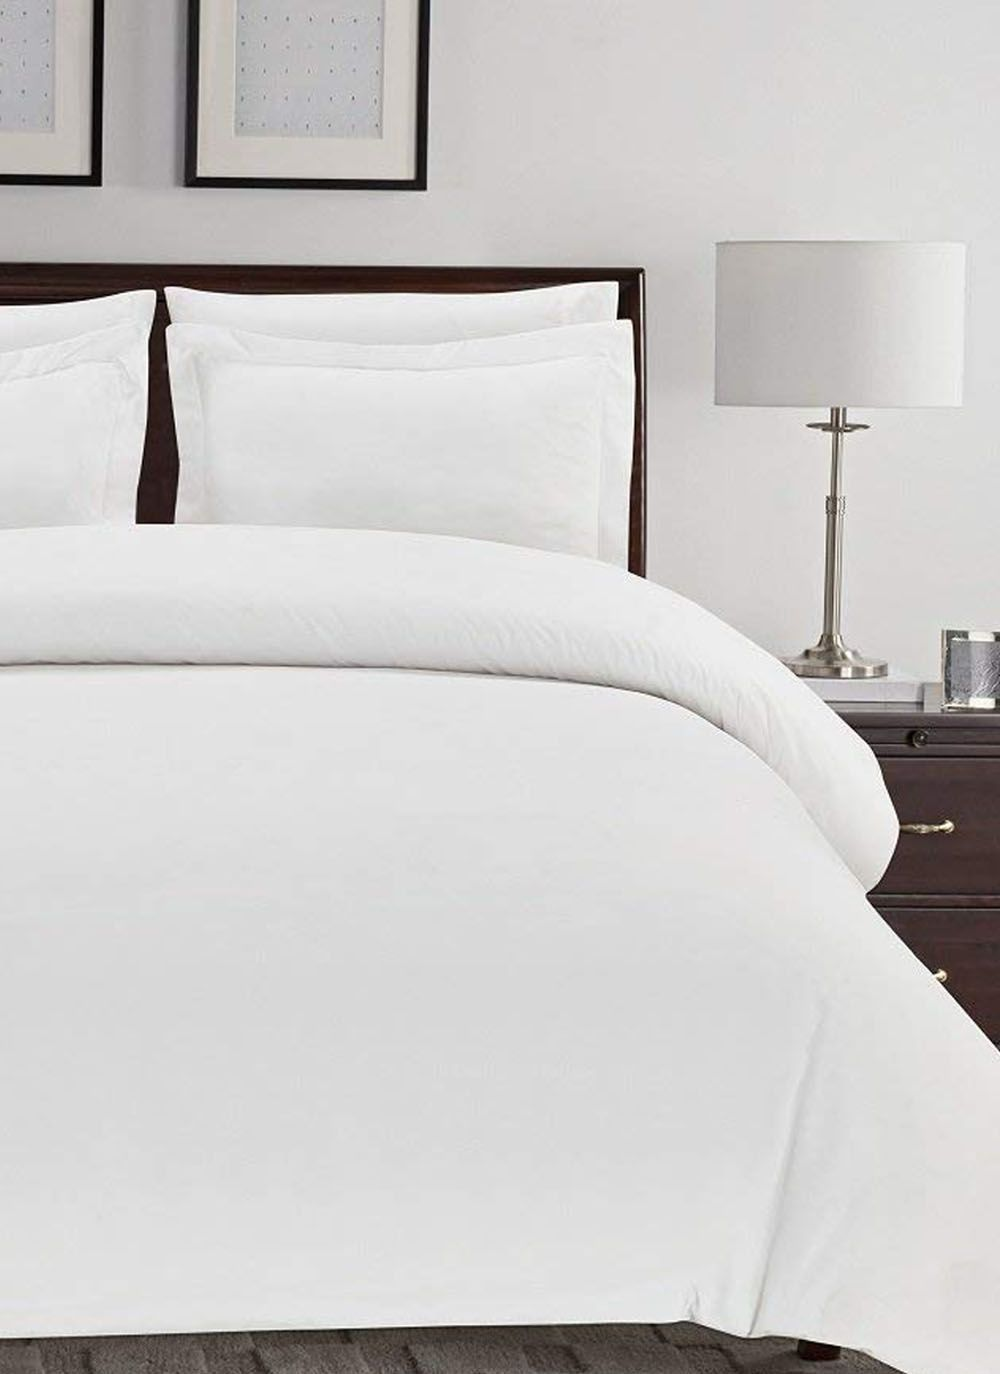 Flipboard 6 Best Duvet Covers Top Rated Comforter Covers For Your Bed